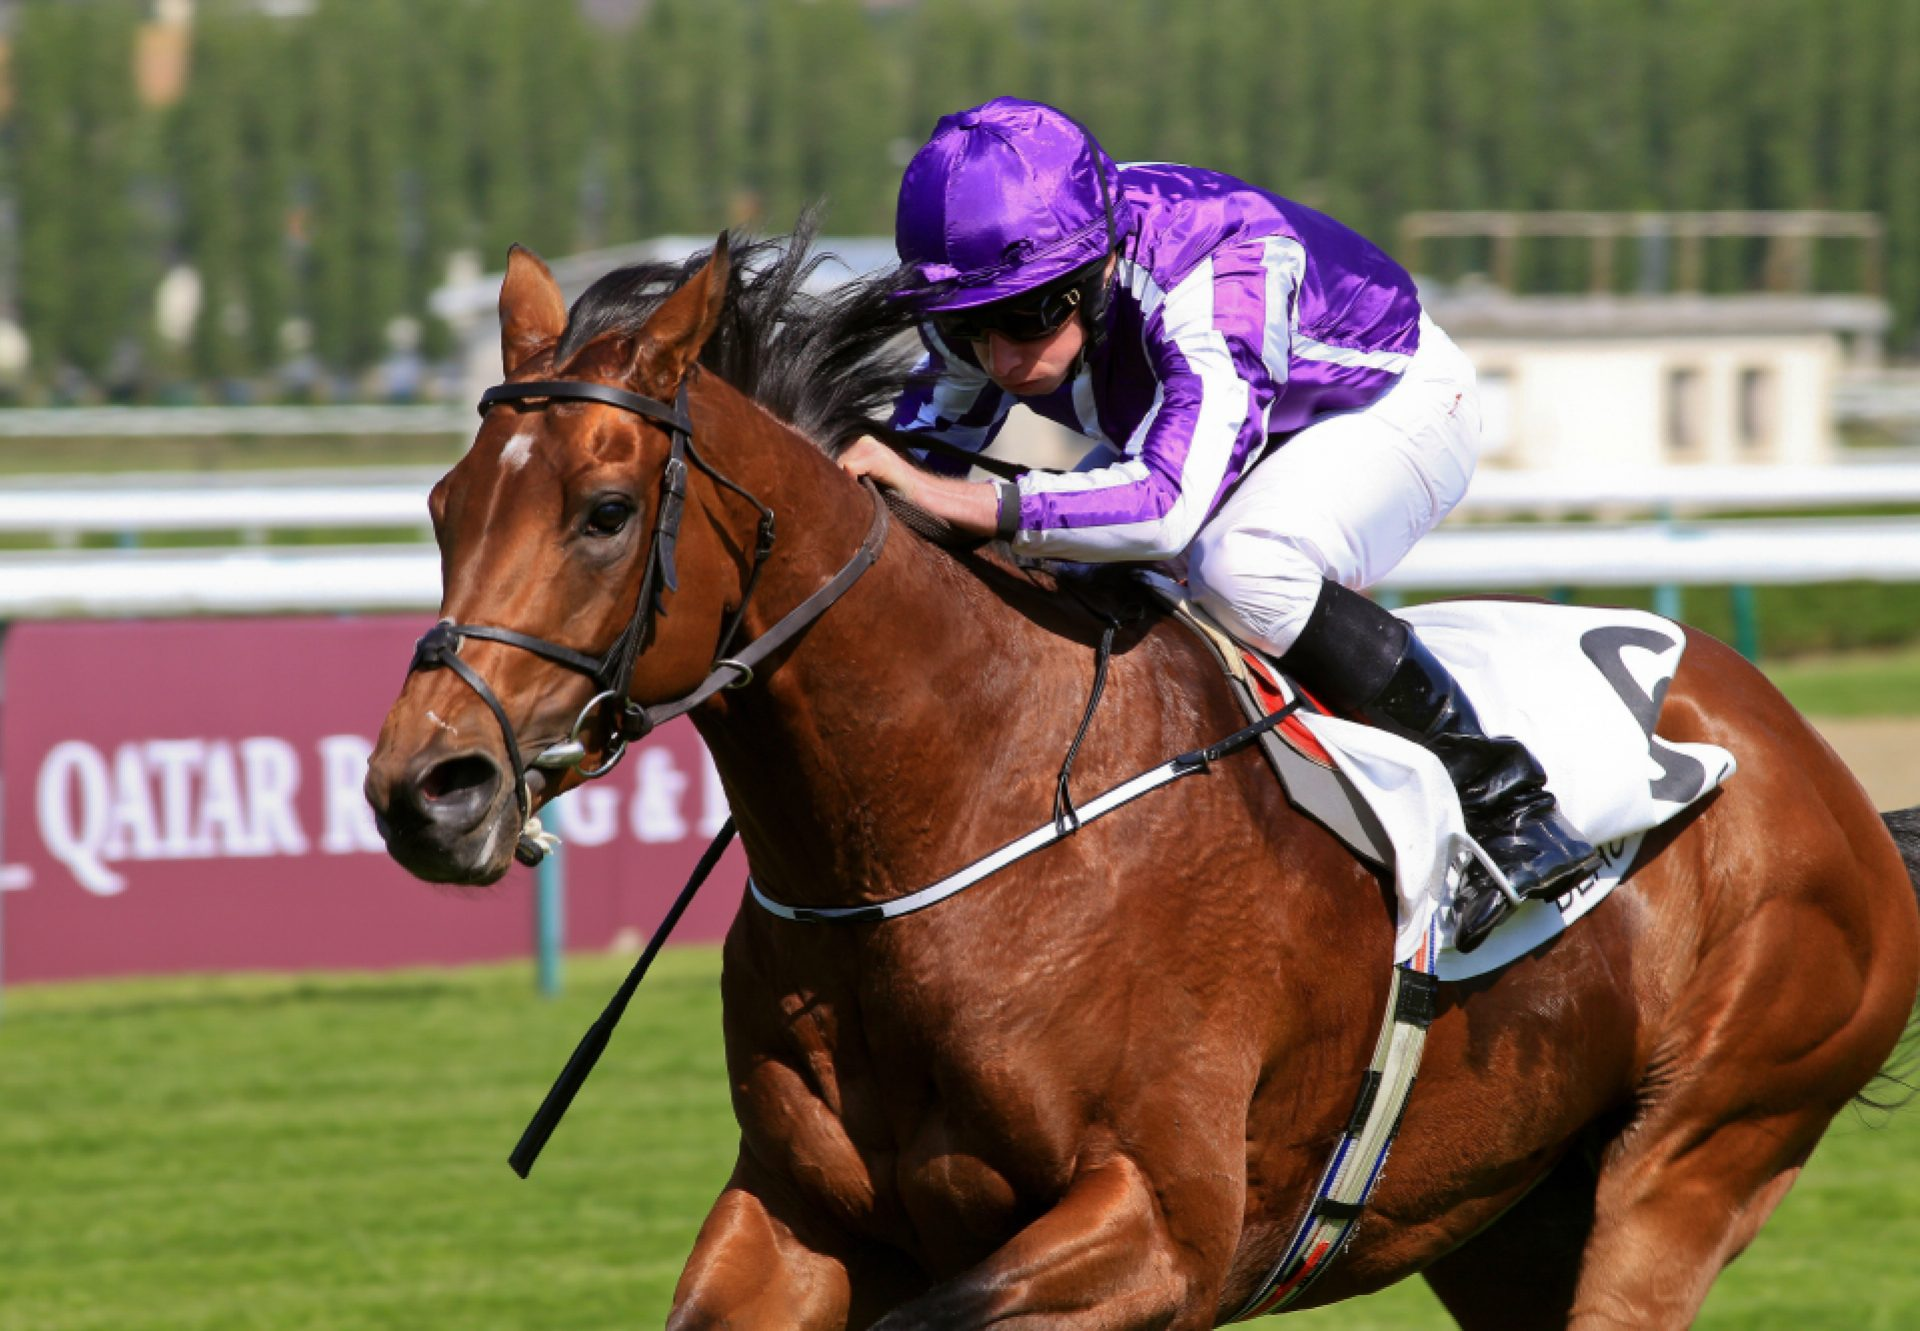 The Gurkha (Galileo) winning the G1 French Guineas